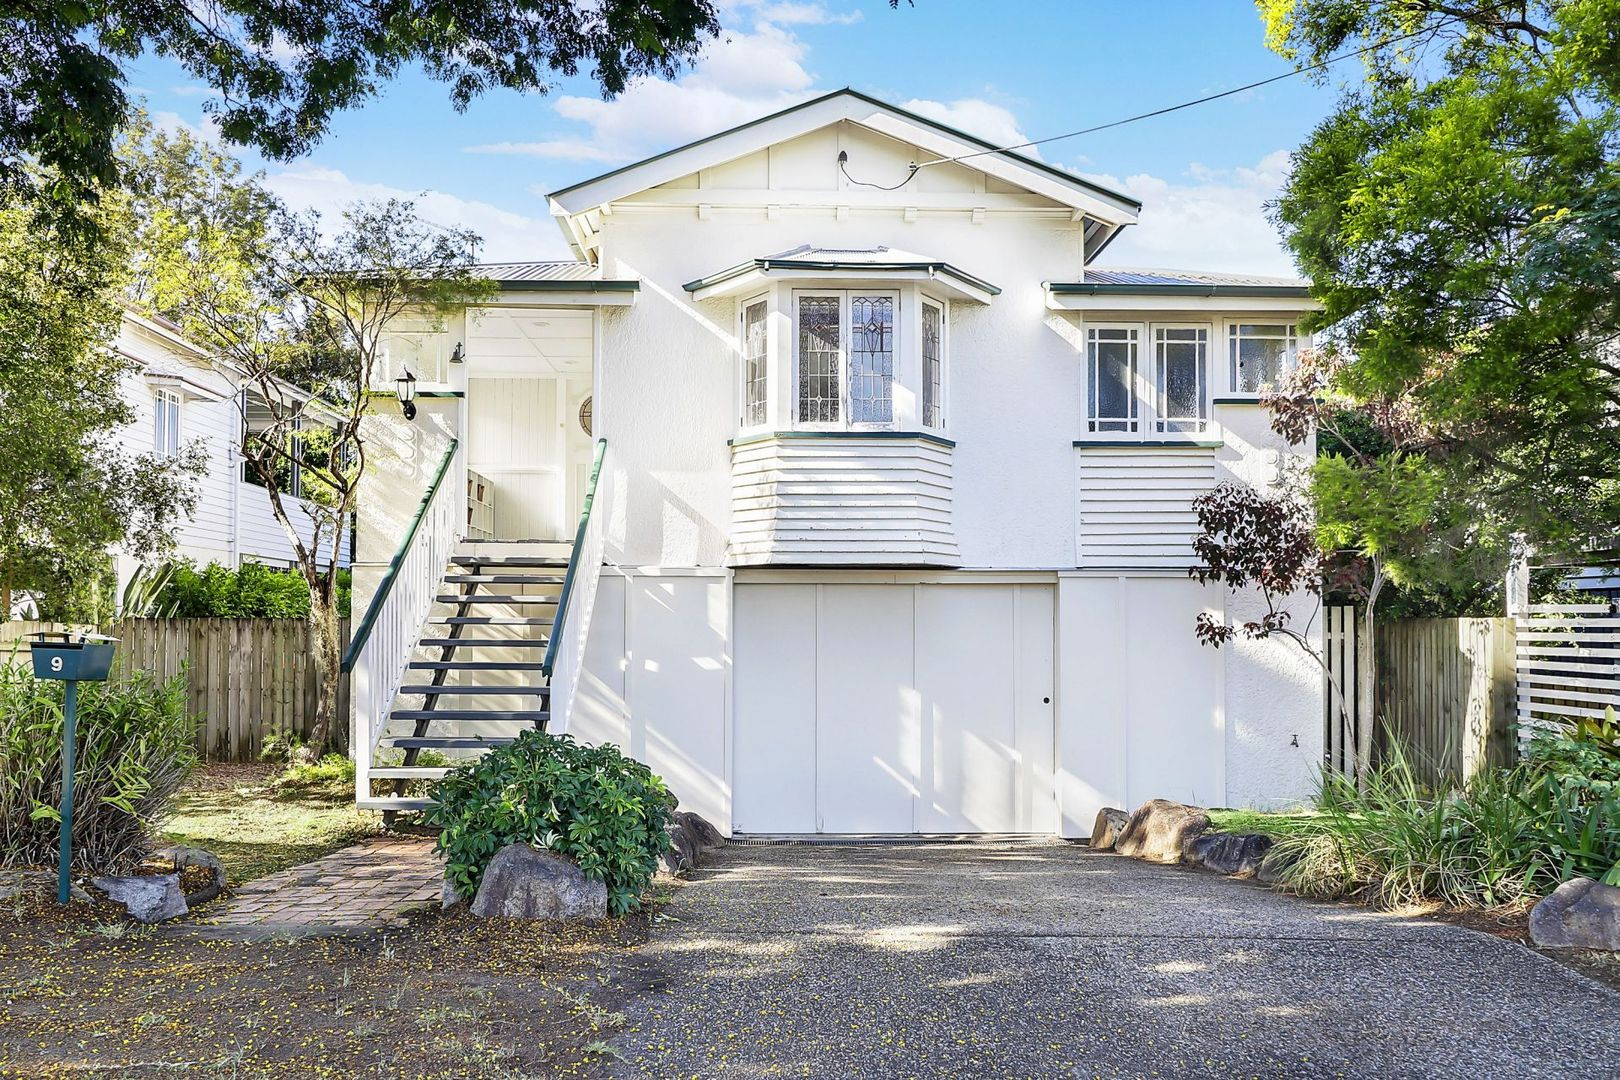 9 Armentieres St, Kedron QLD 4031, Image 0